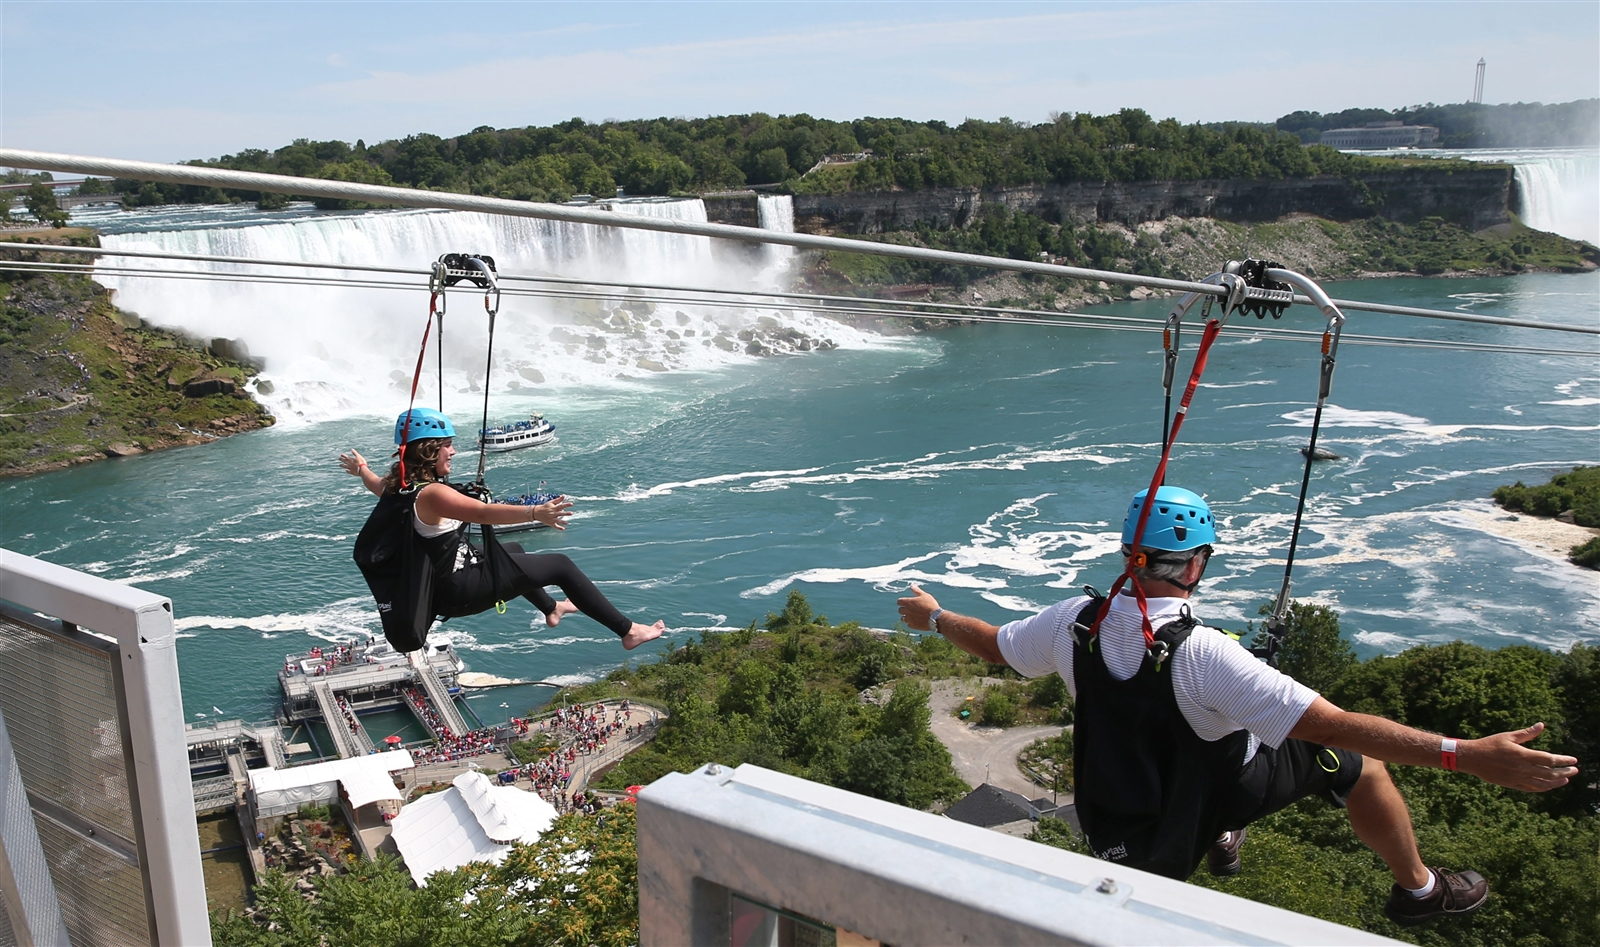 Zip line ride filled with fear, fun – The Buffalo News